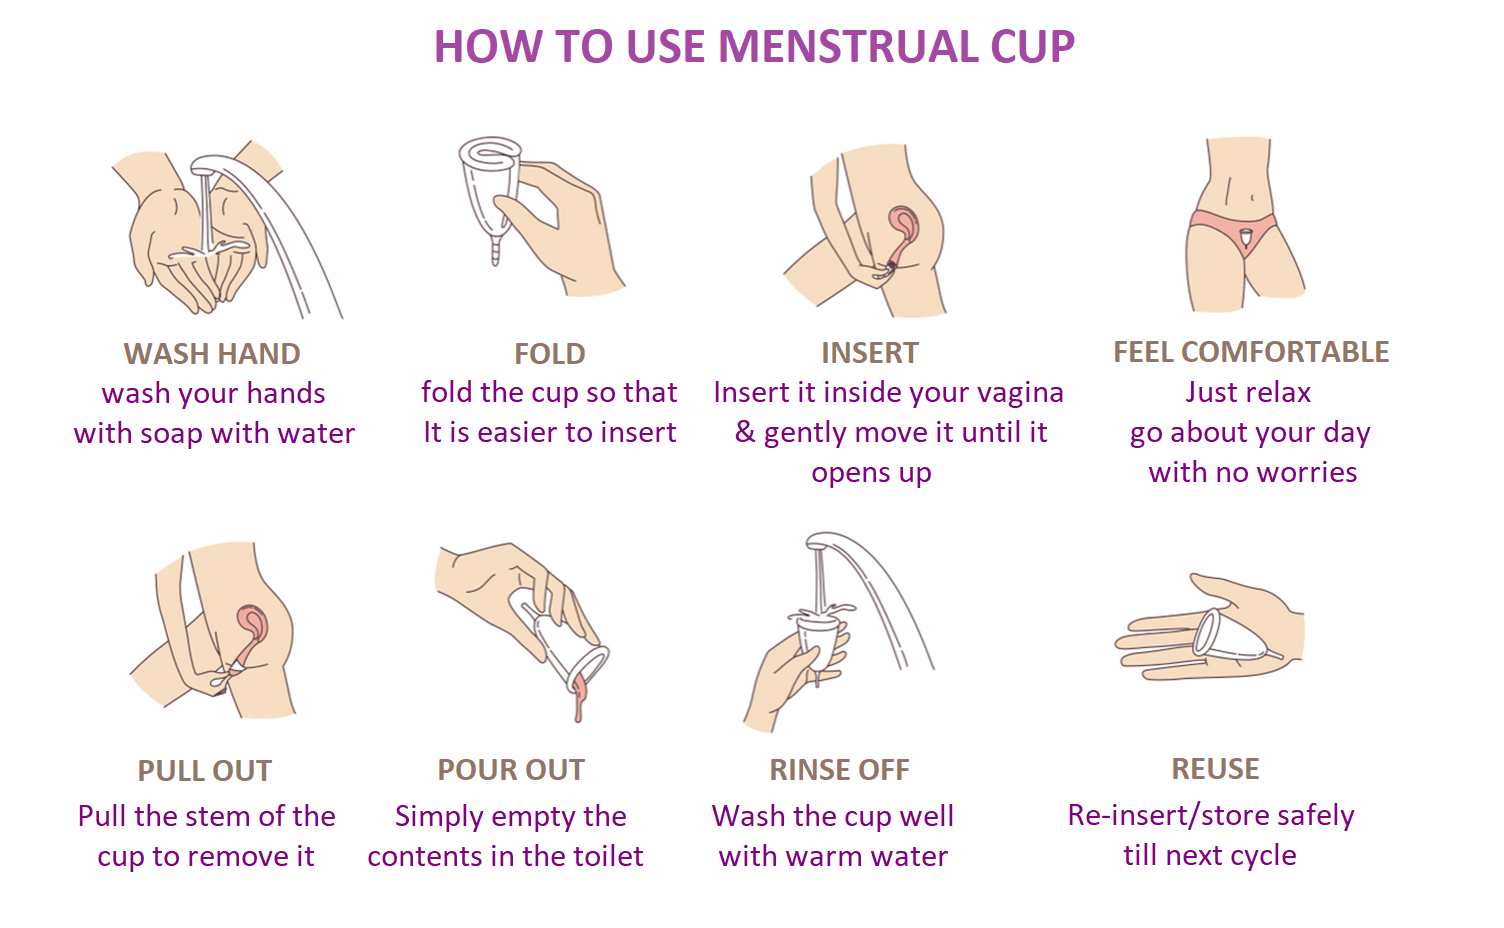 how to use menstrual cup